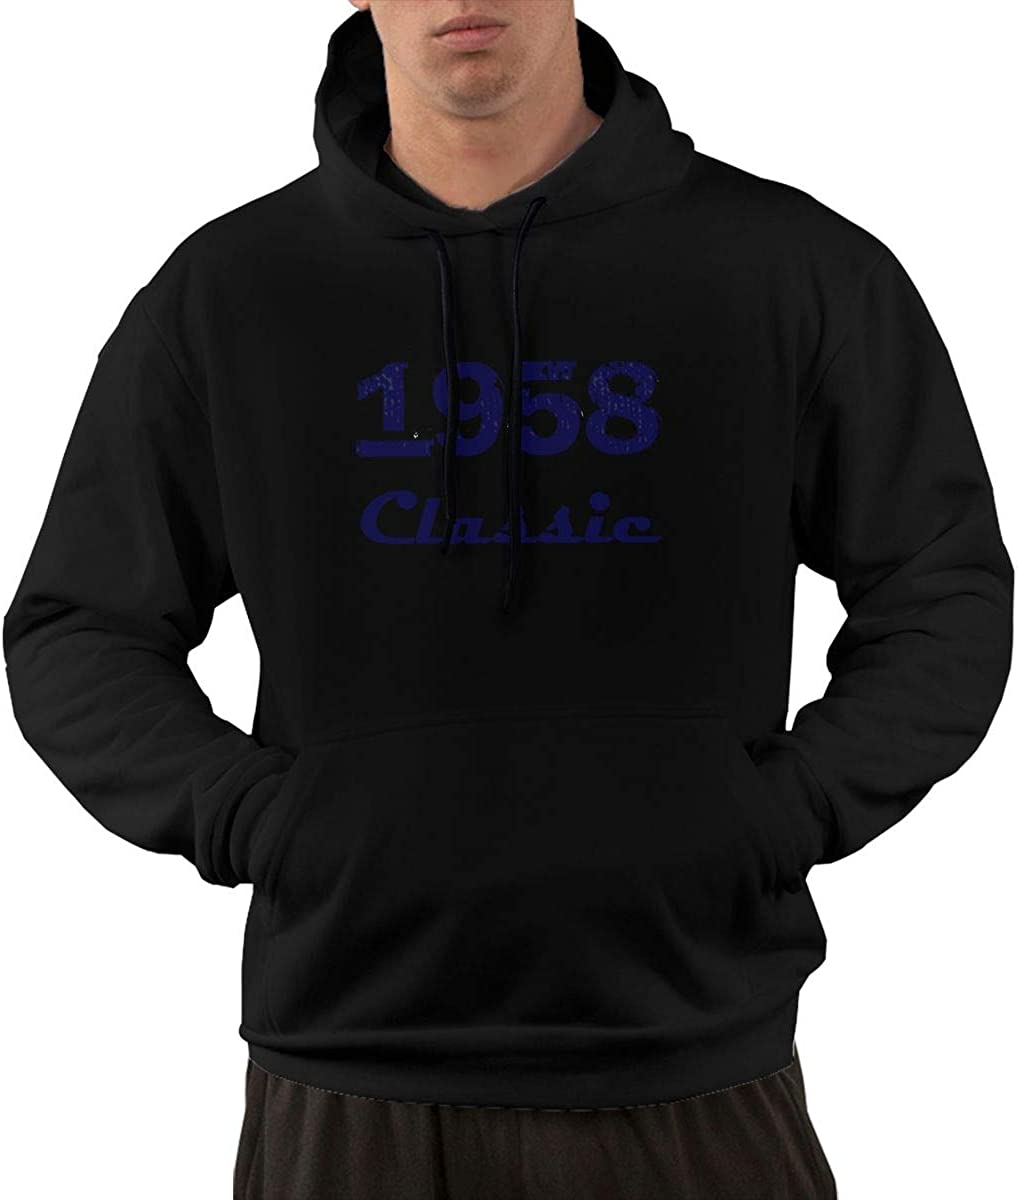 1958 Classic Men's Multifunctional Graphic Sweatsh We OFFer 5% OFF at cheap prices Hooded Pocket